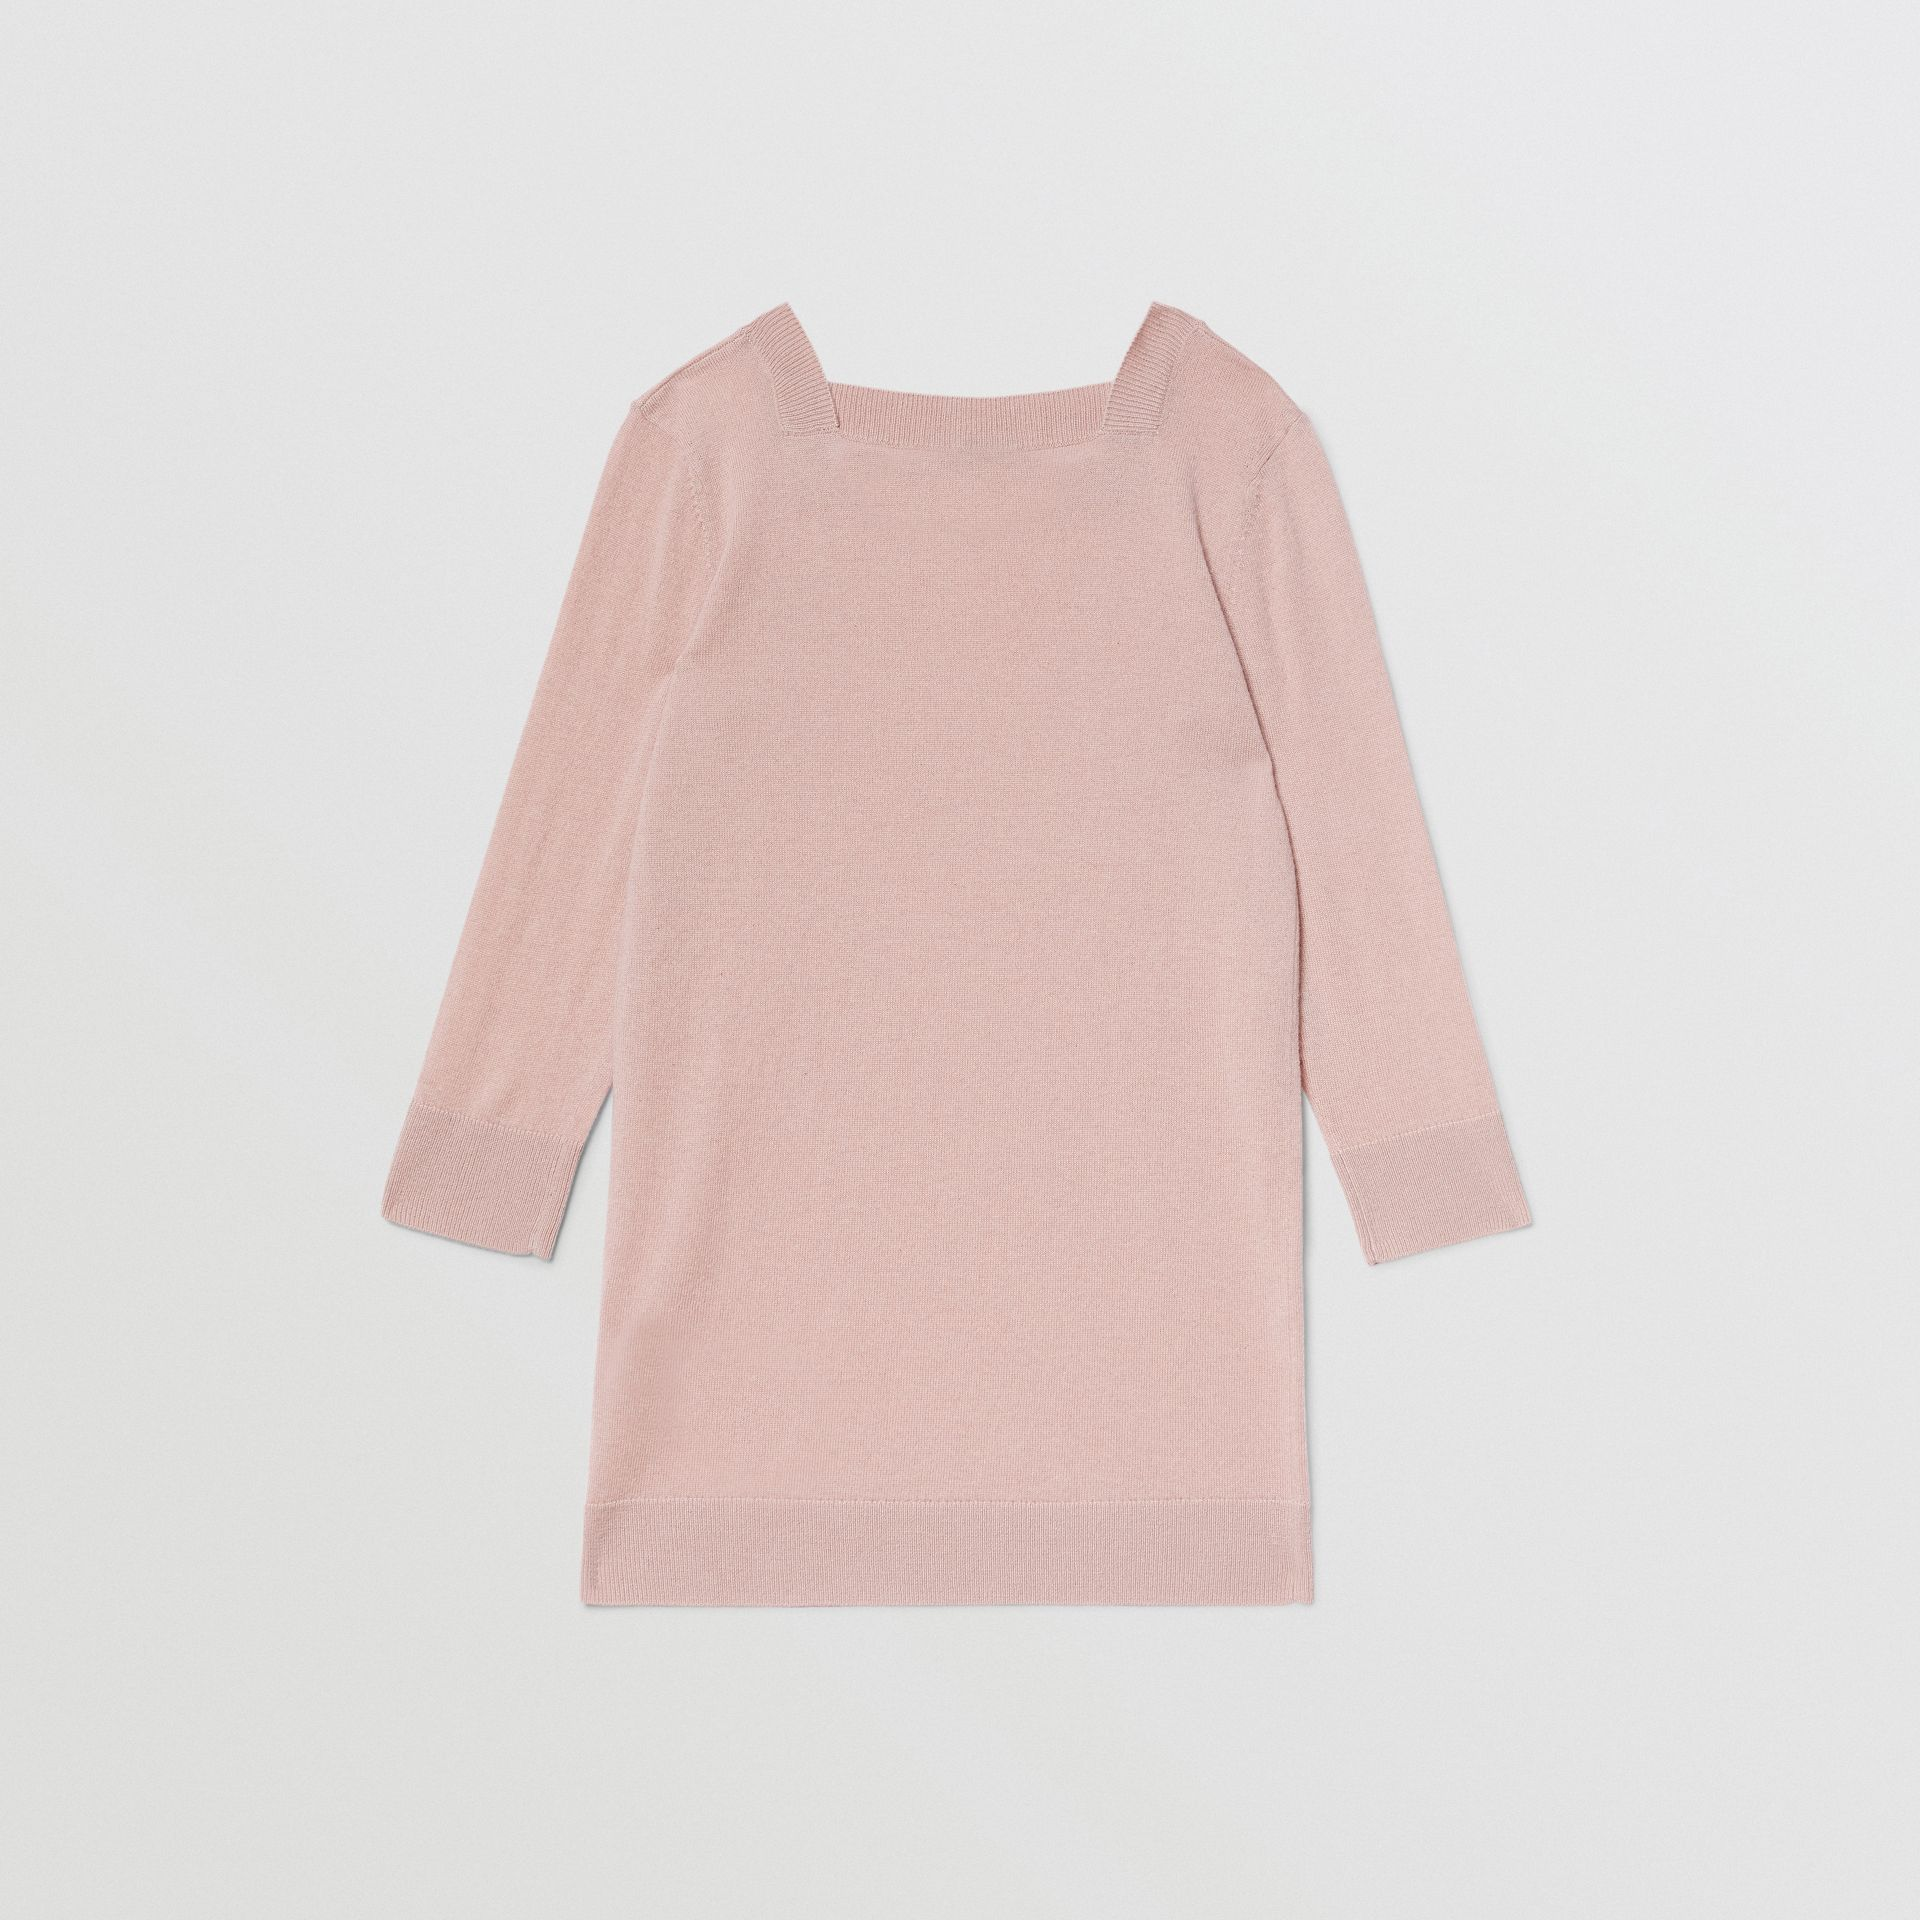 Monogram Motif Cashmere Sweater Dress in Lavender Pink | Burberry - gallery image 3